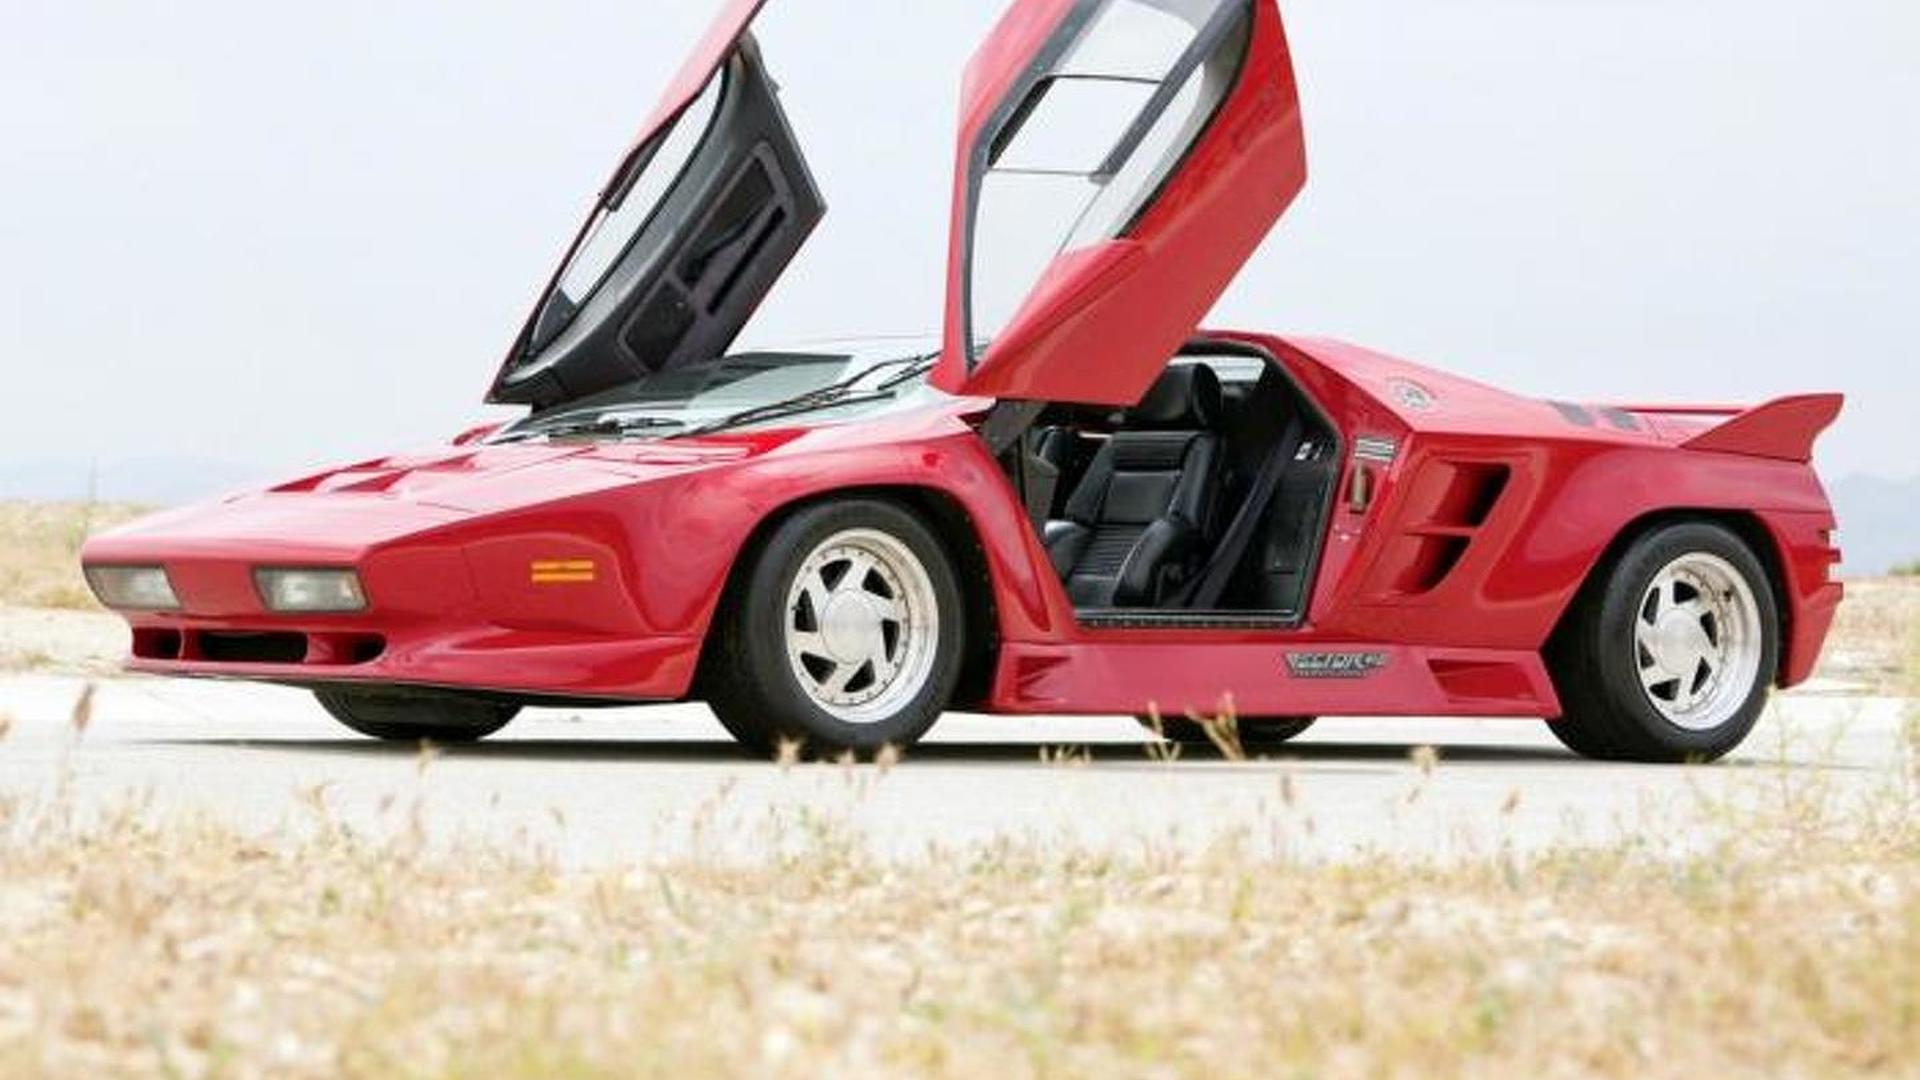 1992 Vector W8 to be auctioned in August